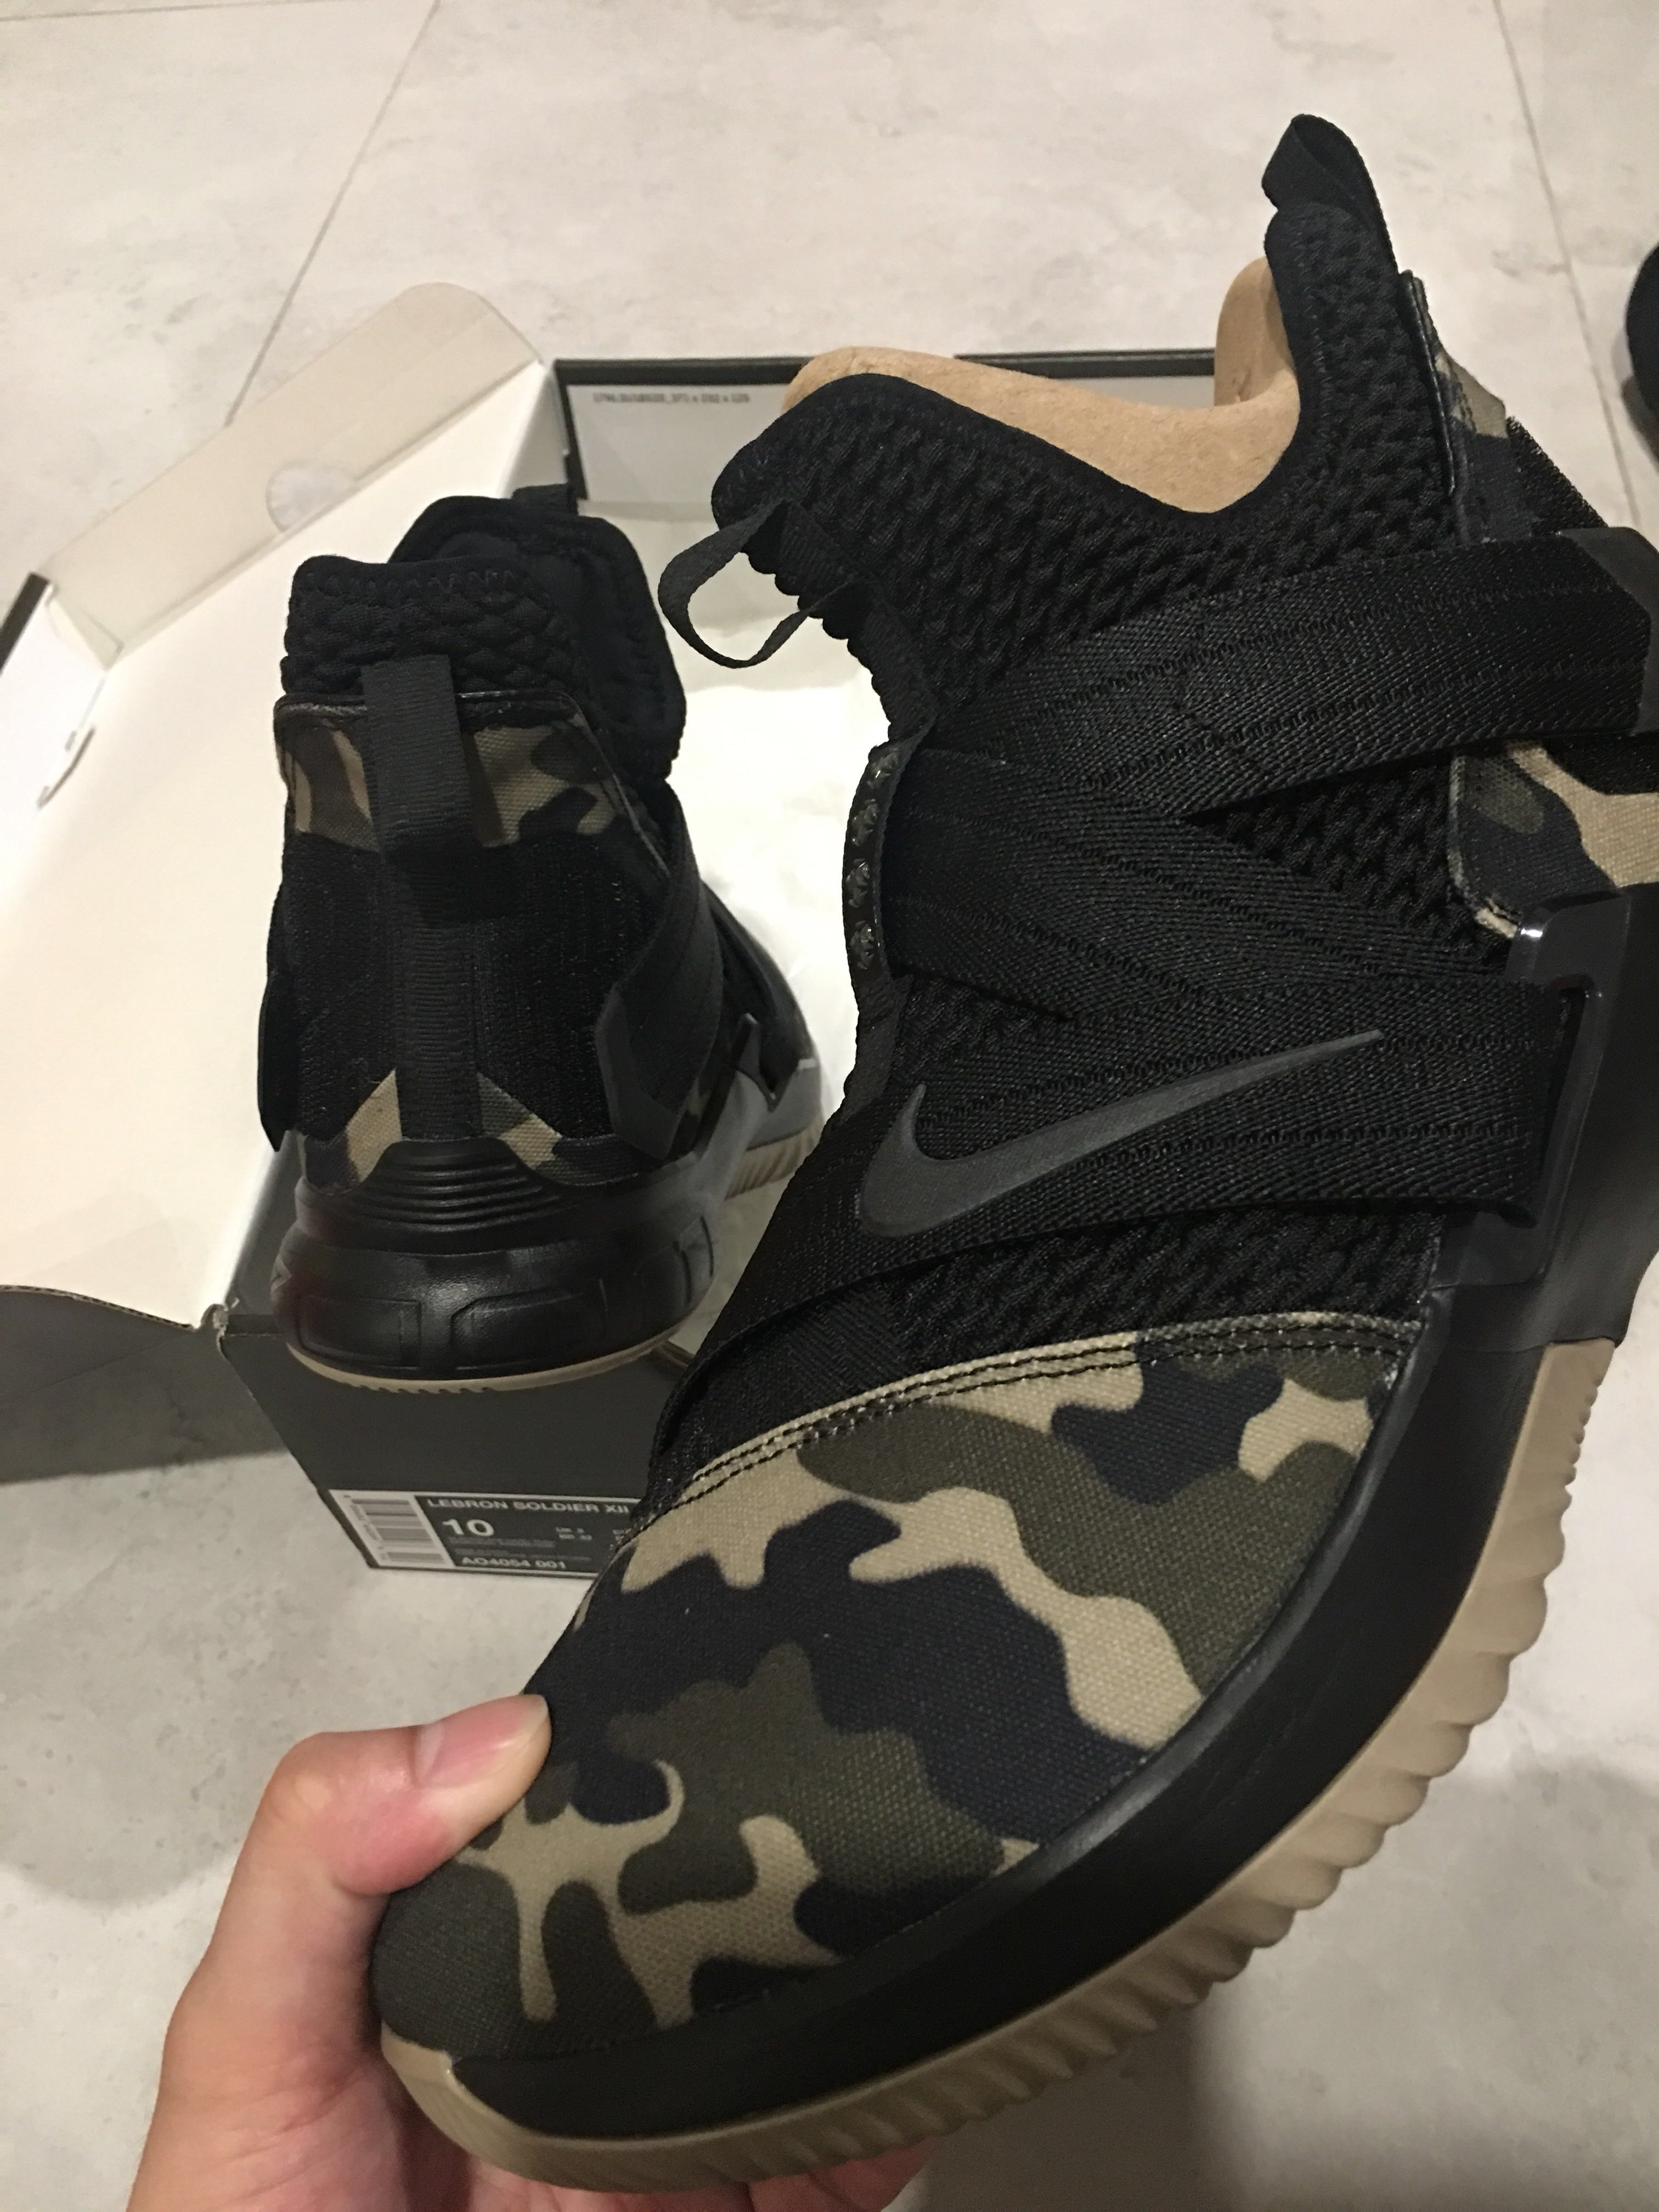 new style 74d2d b4e61 Brand New LeBron Soldier XII Special Force Camo US10, Men s Fashion,  Footwear, Sneakers on Carousell